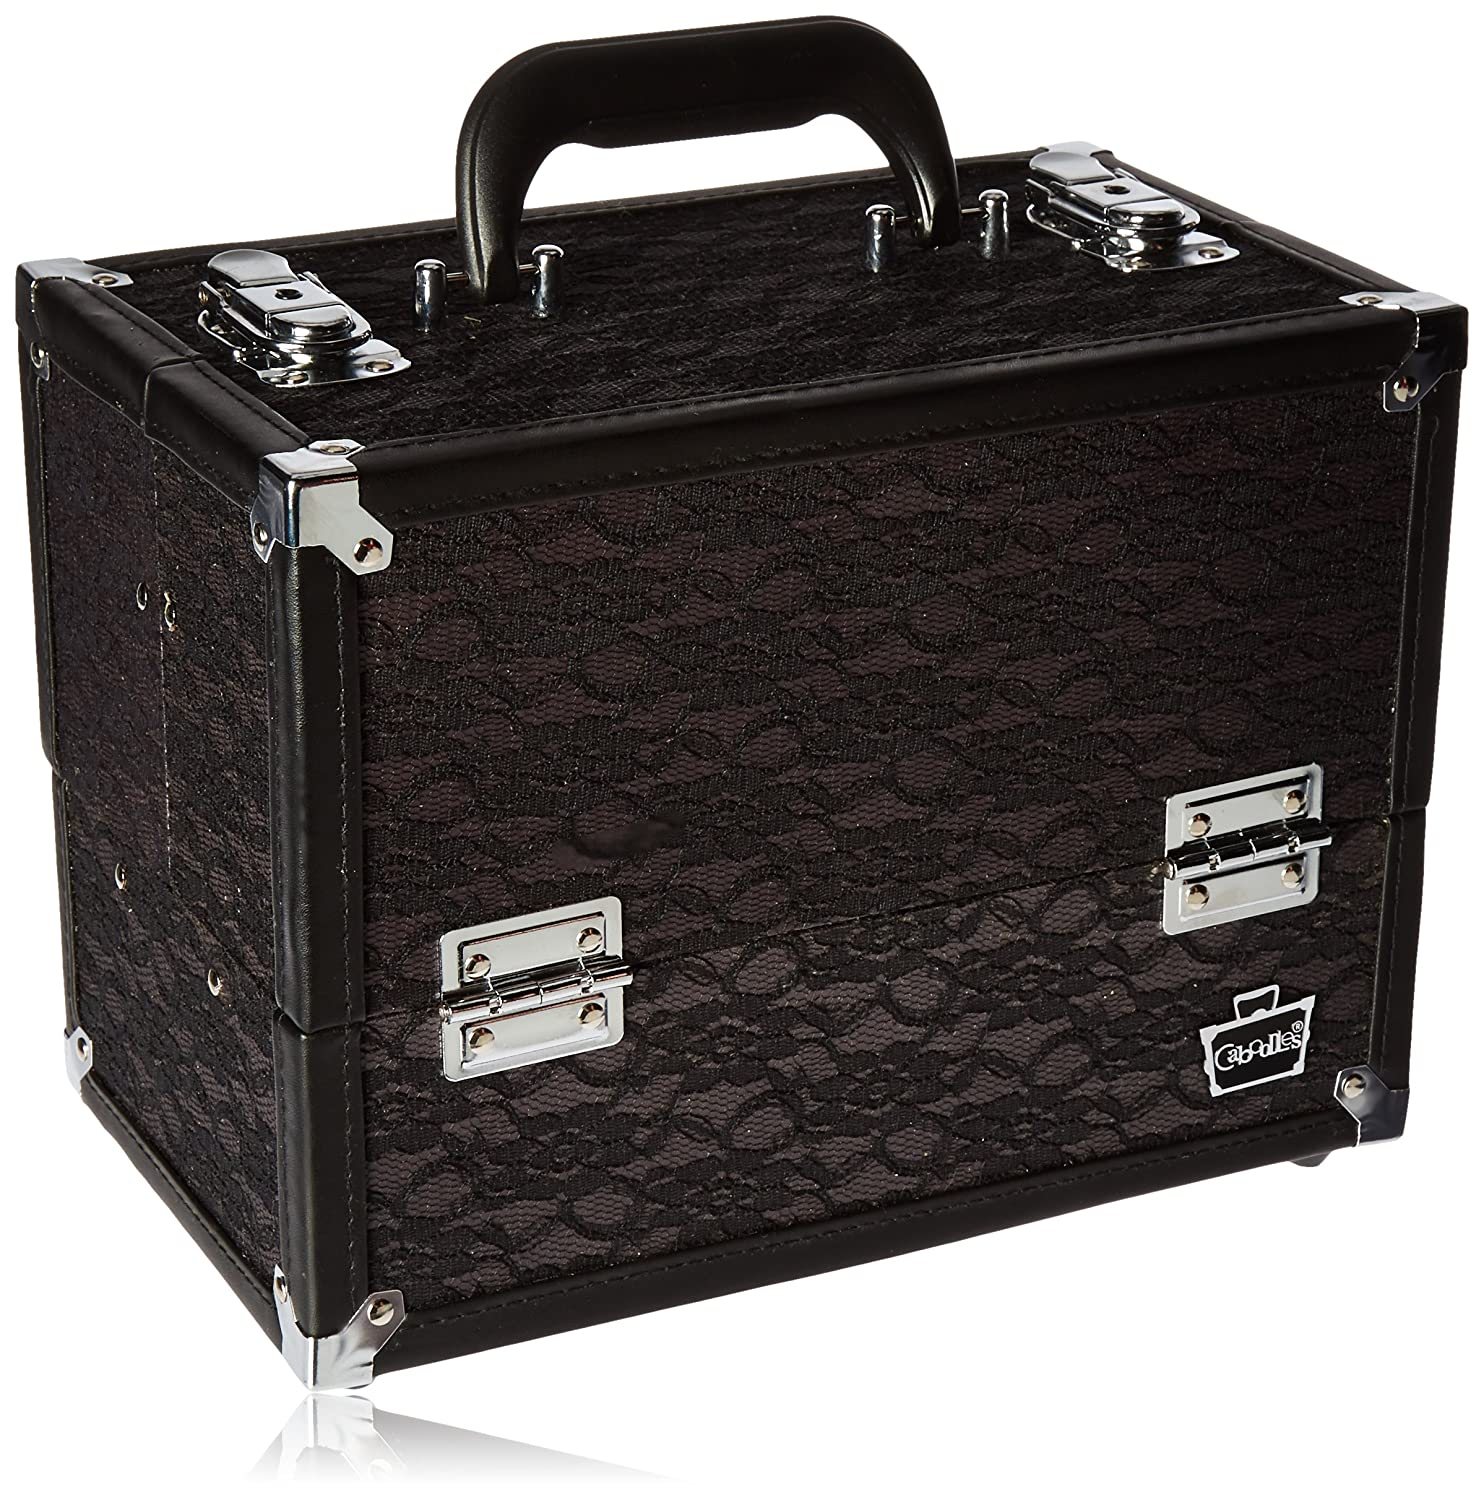 Caboodles Make Me Over 4 Tray Train Case, Black Lace, 3.5 Pound 587748